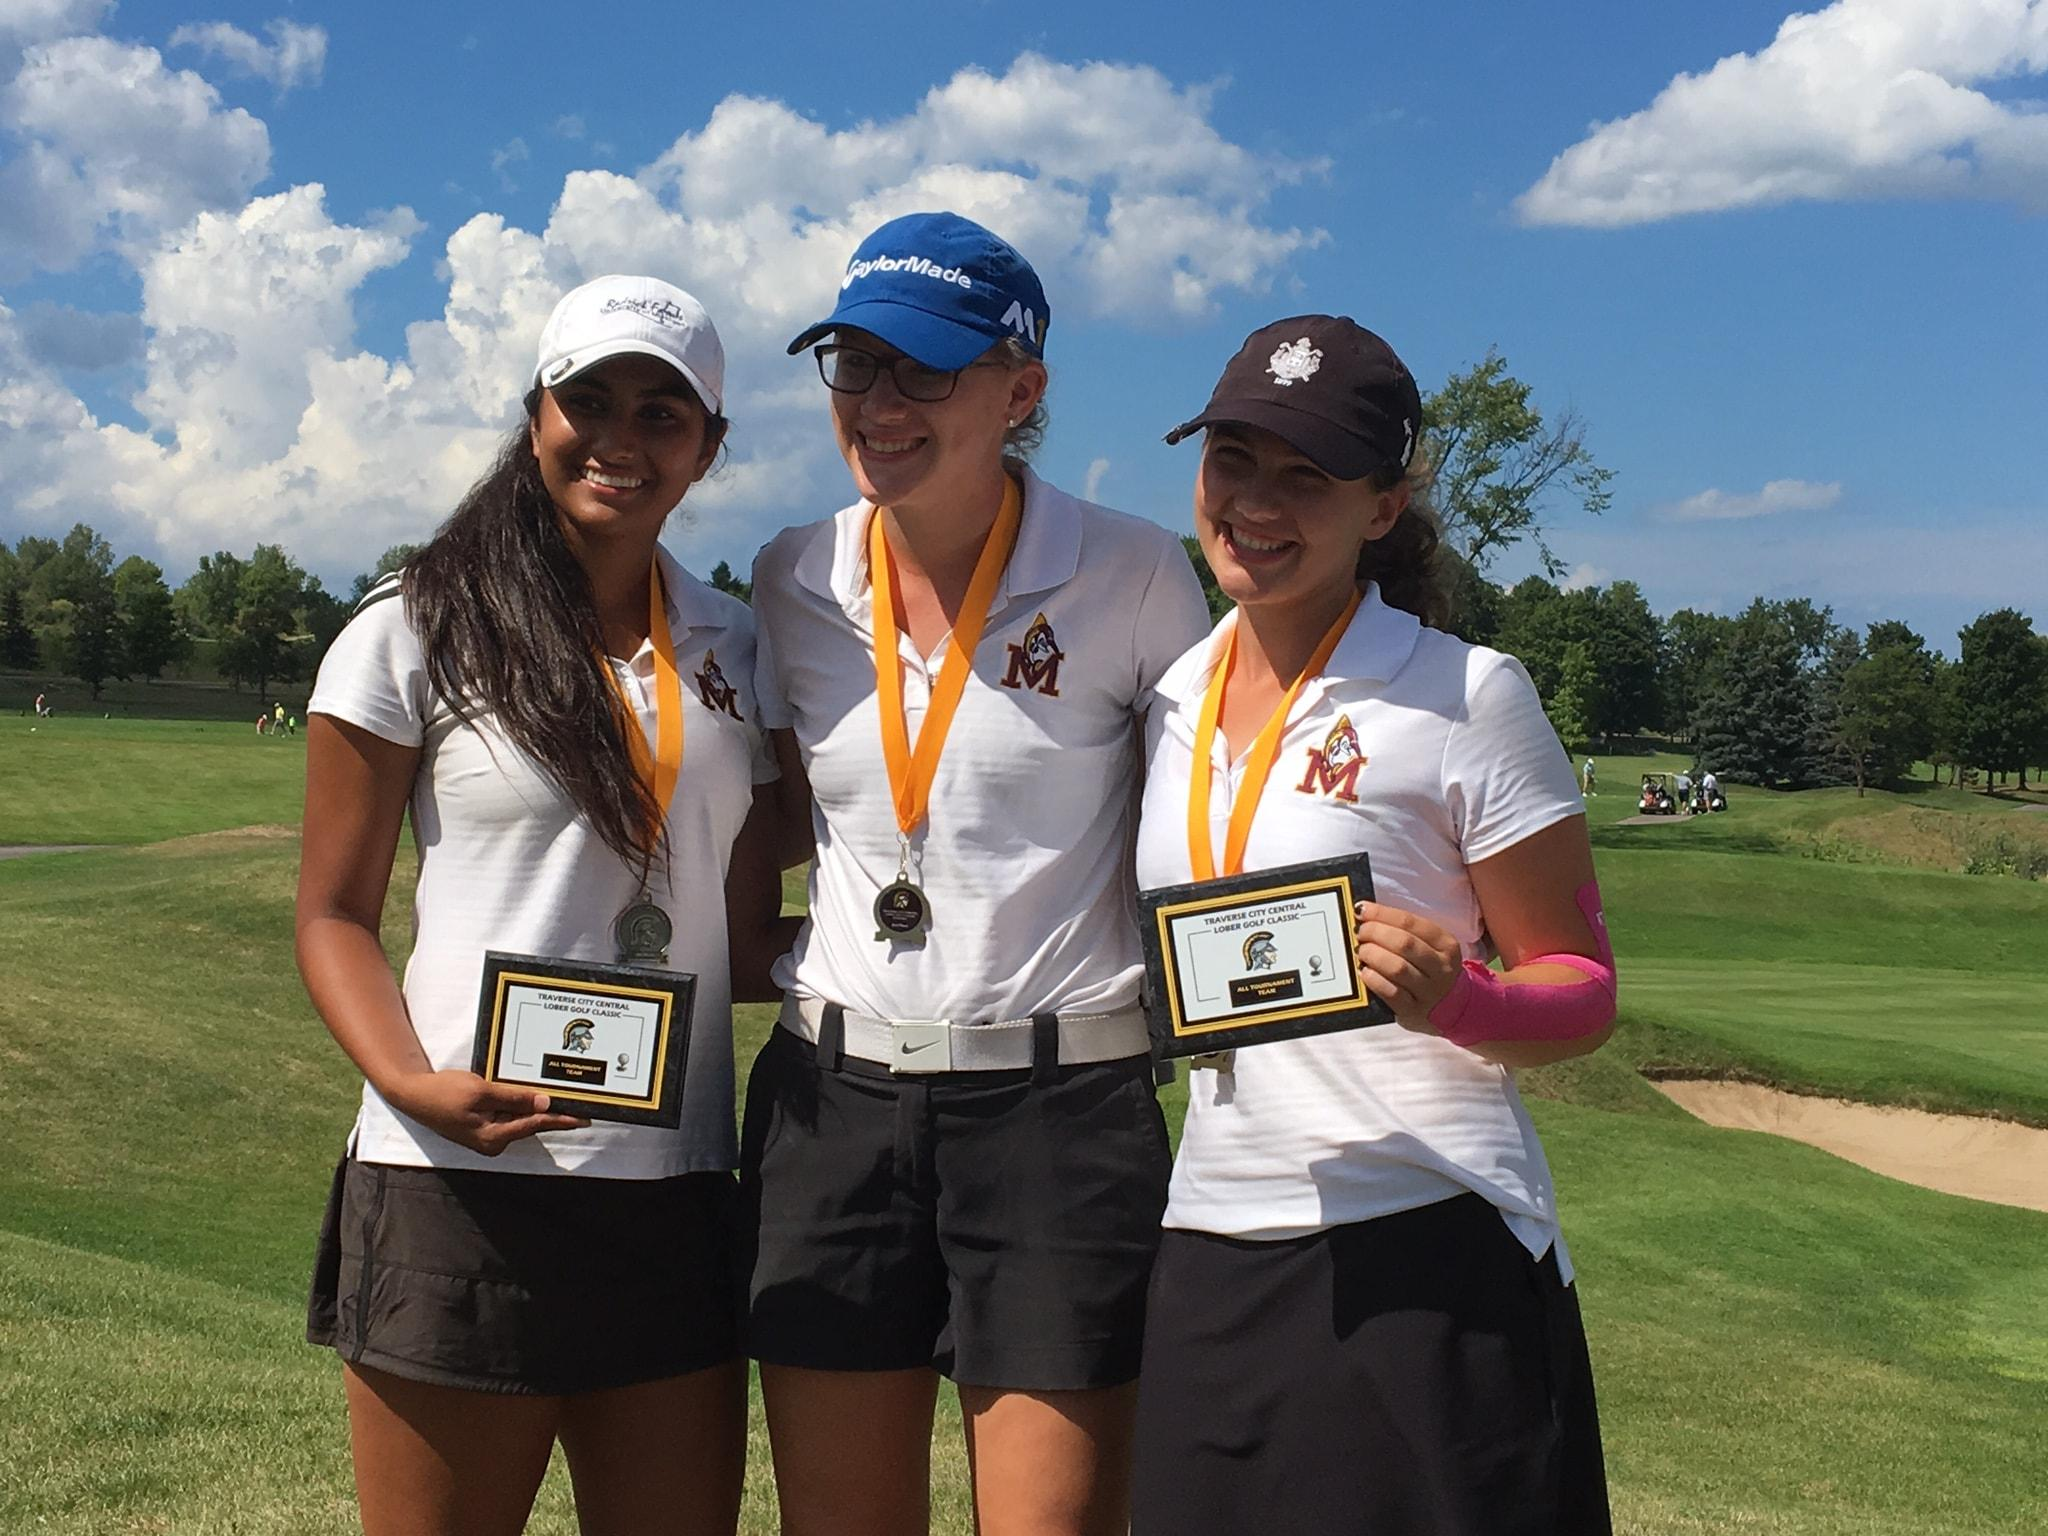 Sophomore Mia Sooch (left) smiles with her victory medal and plaque for making the All-Tournament team for the Traverse City Central Lober Golf Classic, next to senior Marissa Lobbia (middle), and sophomore Sophie Vanderwheele (right). Photo Credit: Mia Sooch